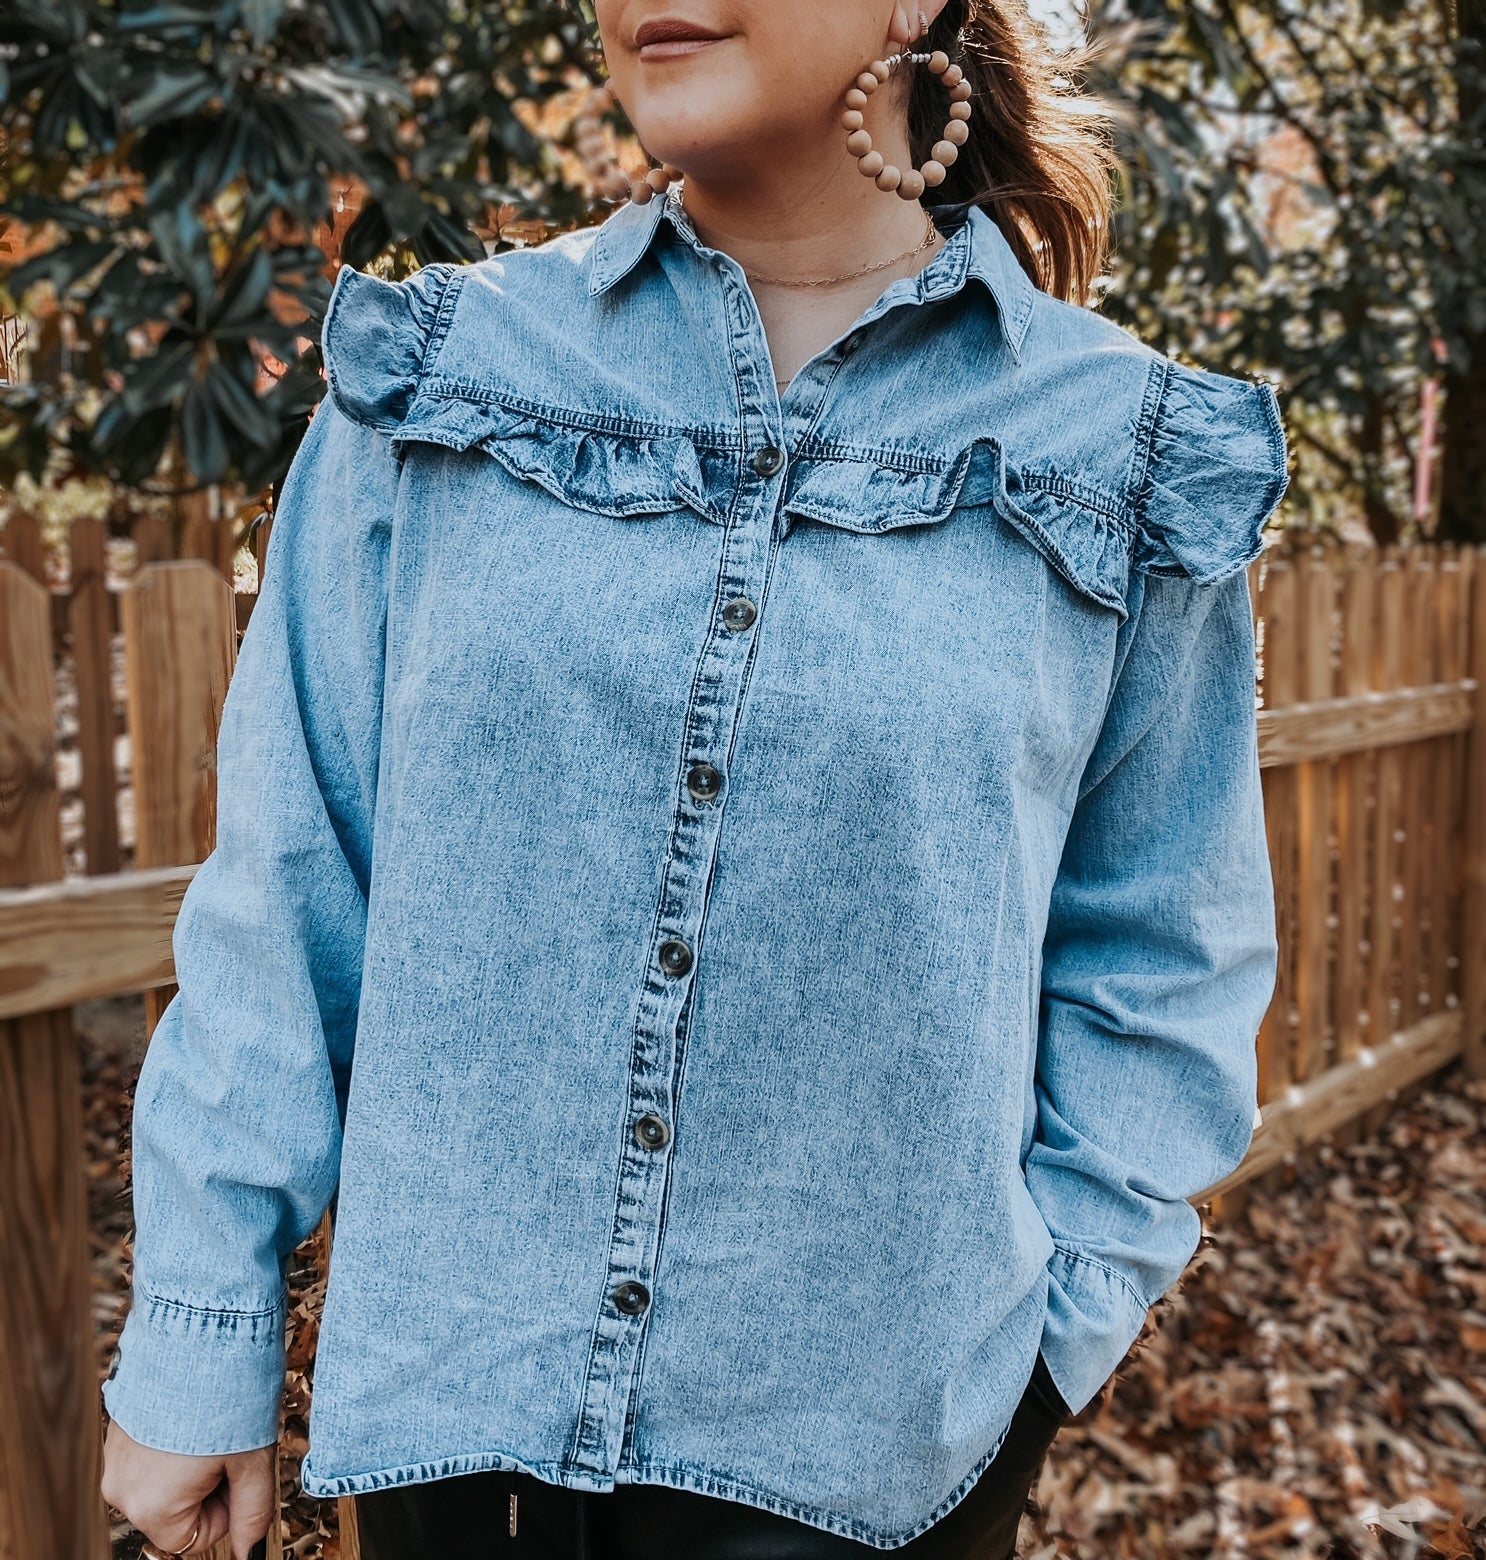 Daisy ruffle denim top